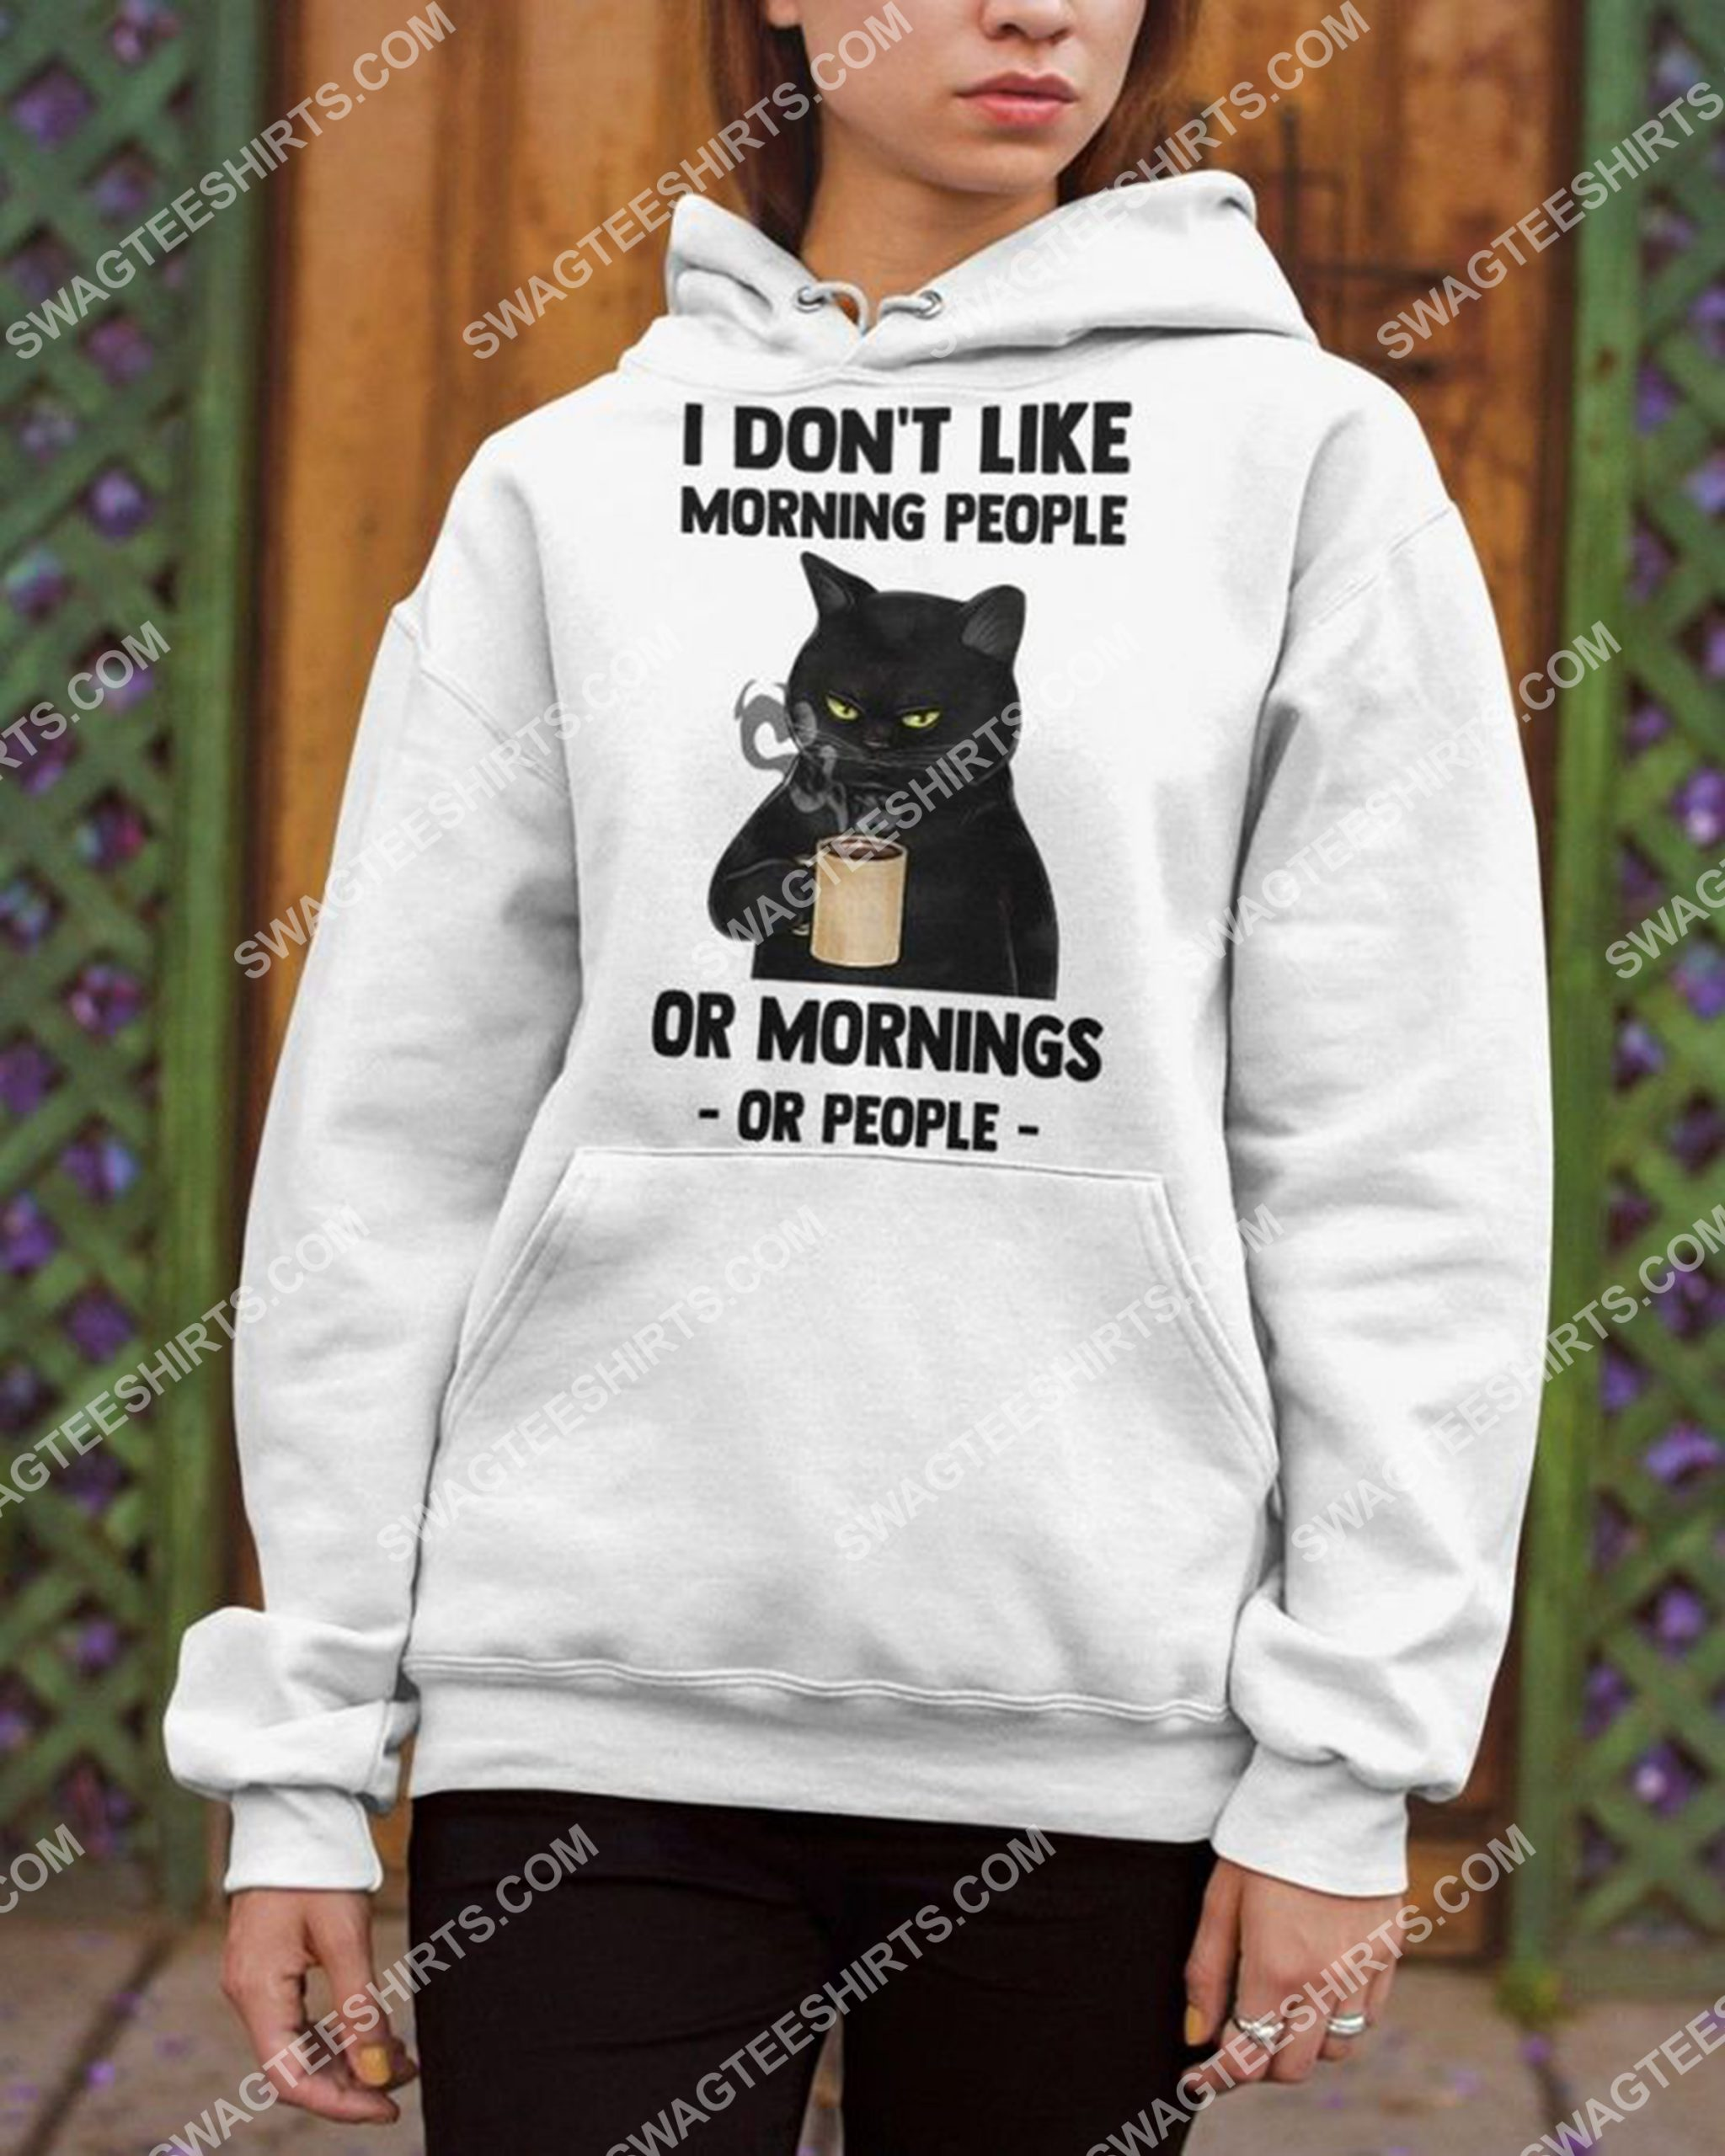 i don't like morning people black cat coffee shirt 3(1)